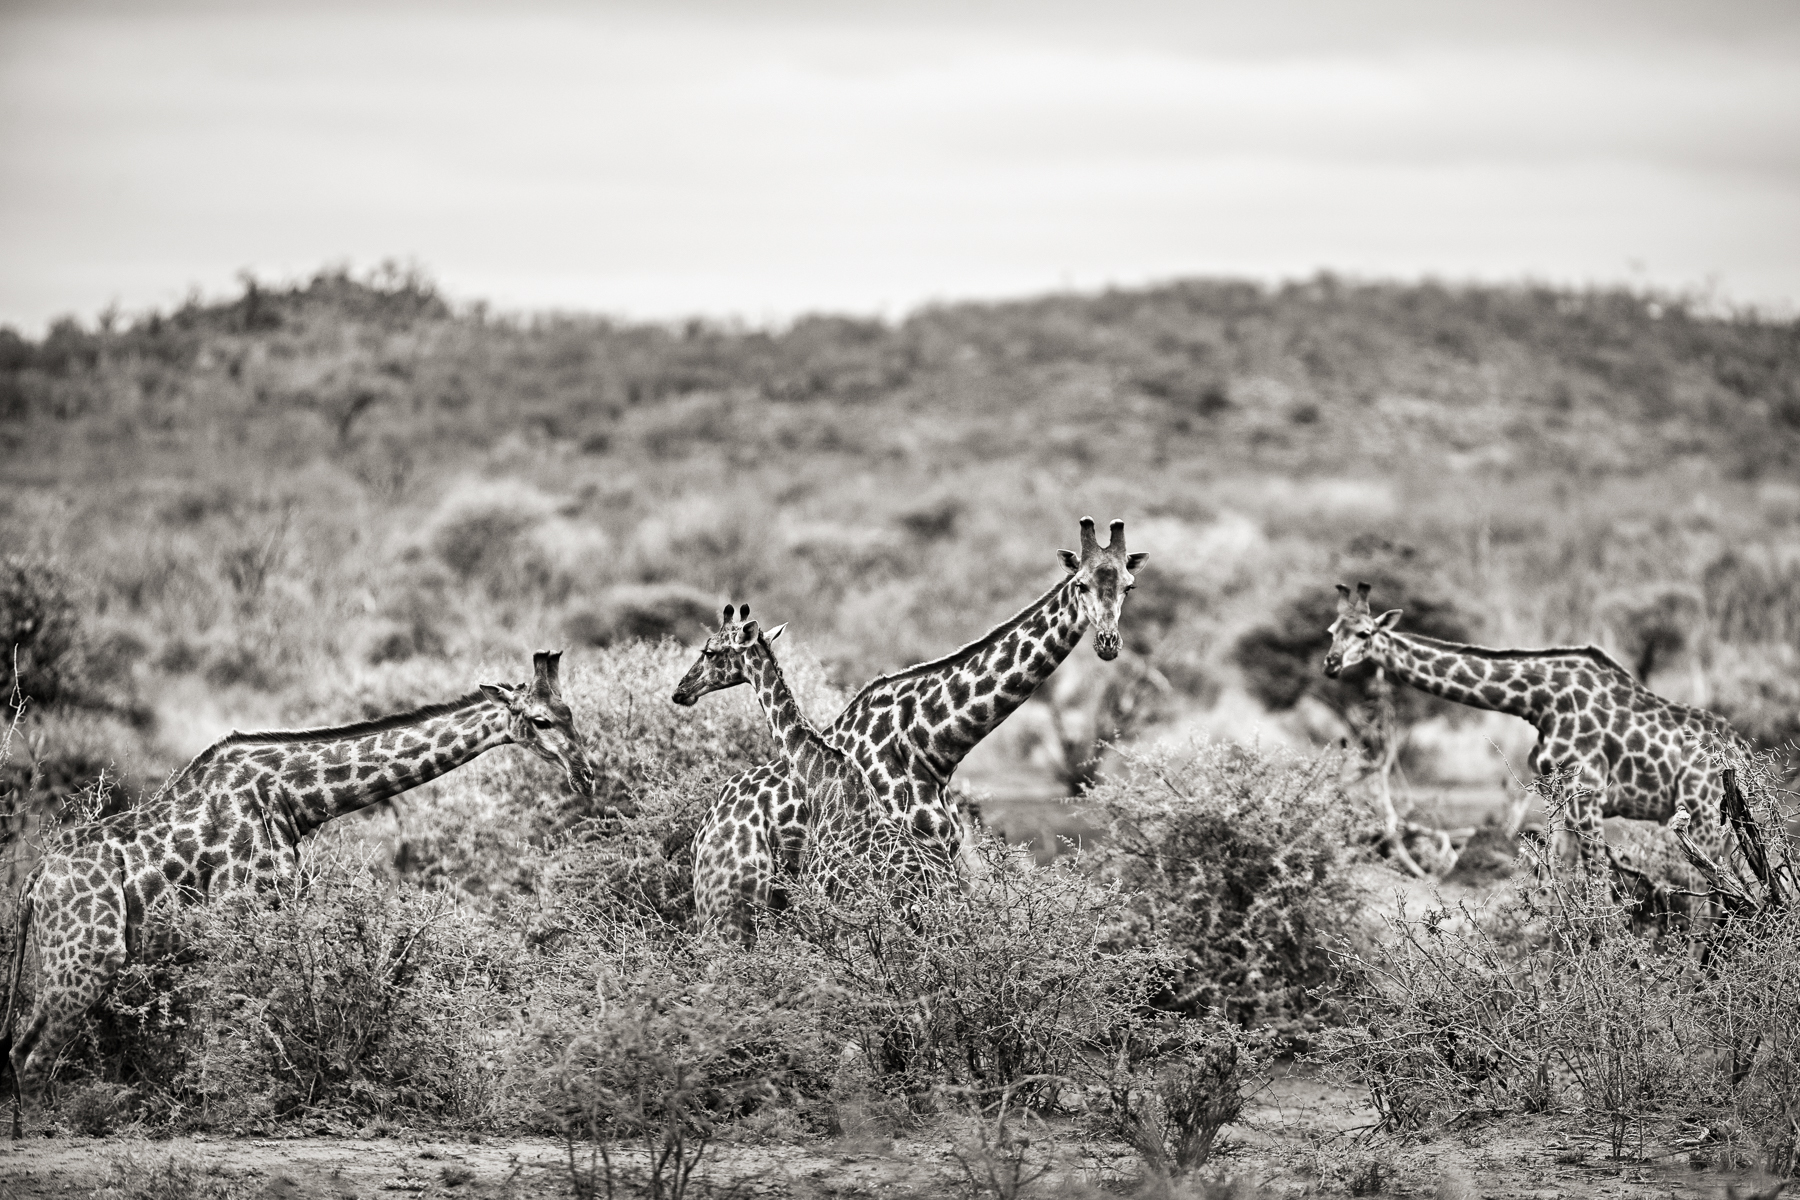 2013_09_JH_Port_GiraffeHerd_Closer_161117_SAFARI_3365_w3_RGB_